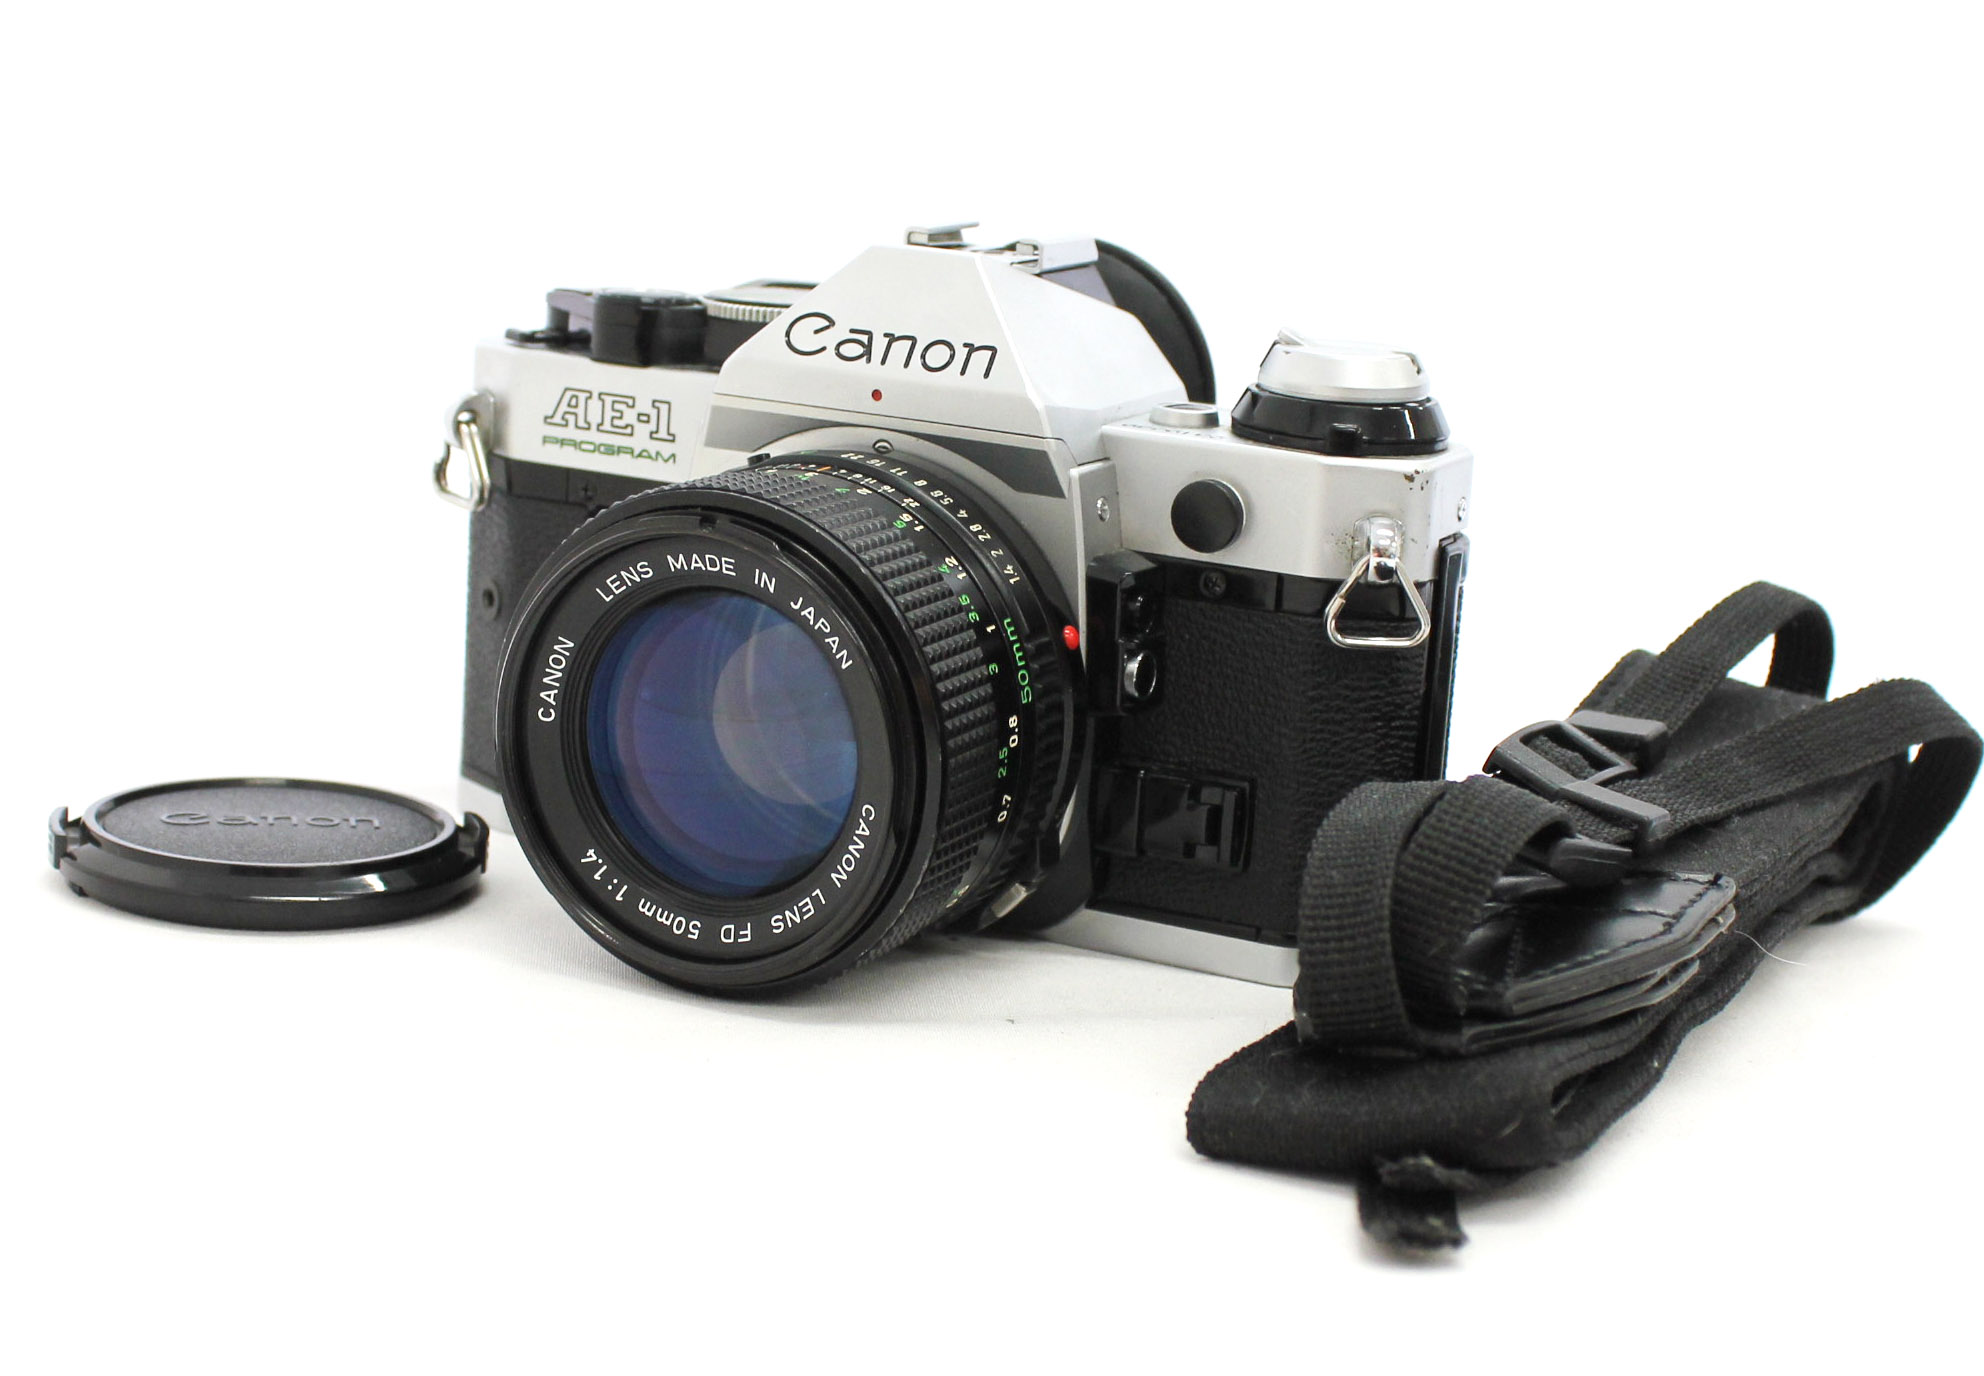 [Excellent+++++] Canon AE-1 Program 35mm SLR Film Camera with New FD NFD 50mm F/1.4 Lens from Japan